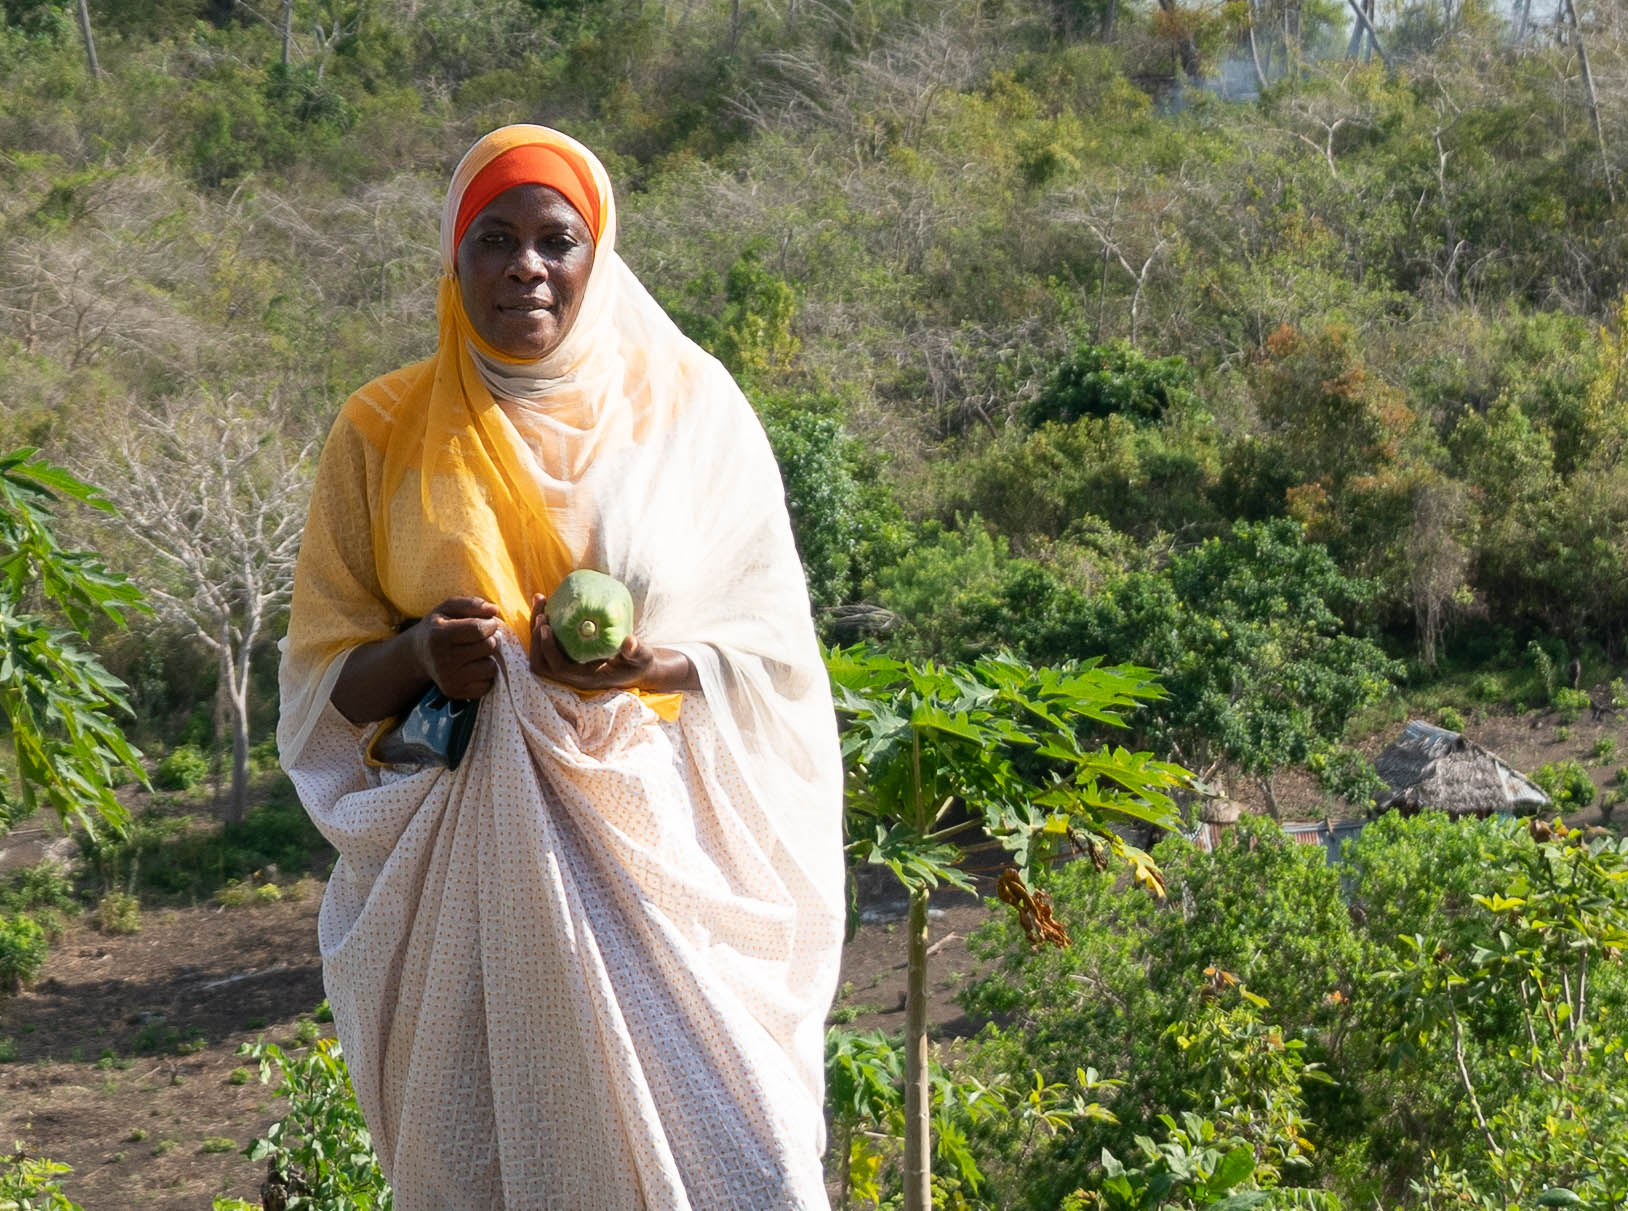 Woman in on a hillside in Tanzania holding her purse and a papaya